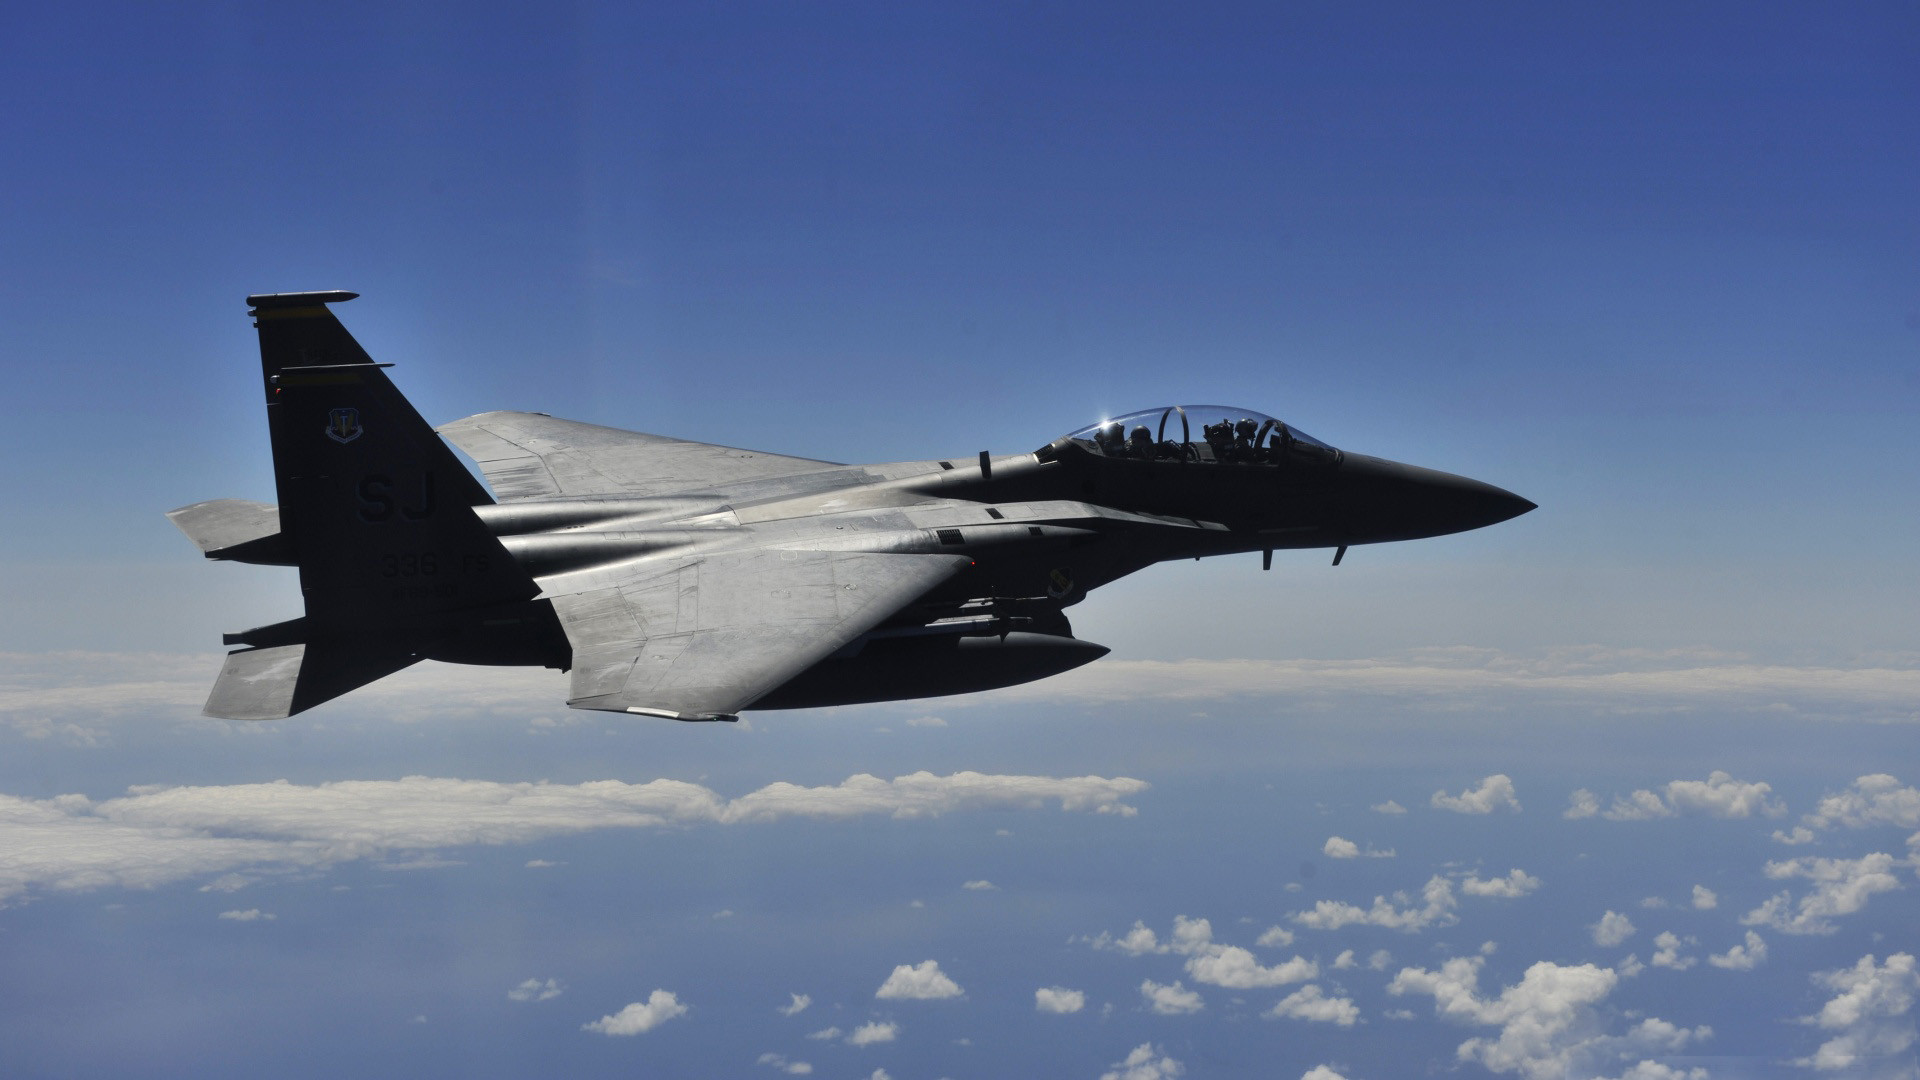 … Download 4th Fighter Wing United States Air Force Wallpaper …